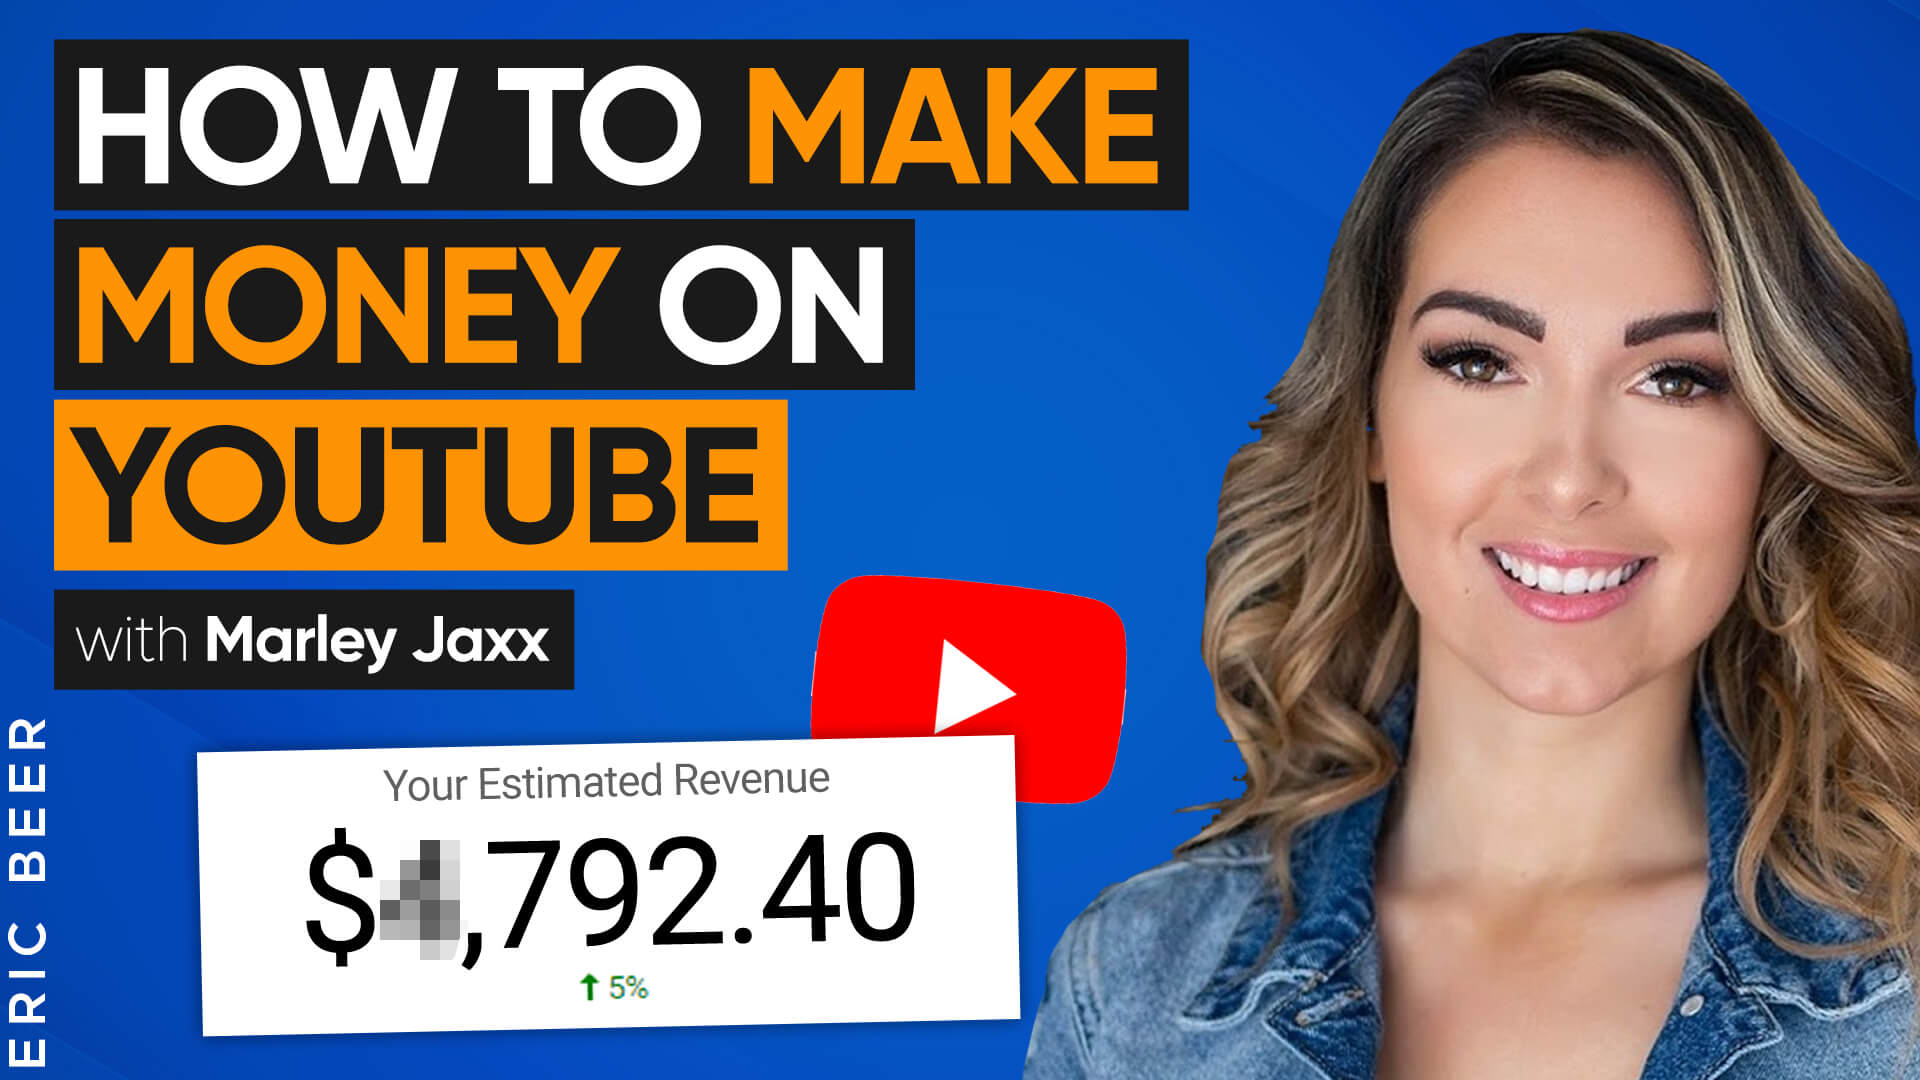 How to Create Cash Flow With Your YouTube Content | Interview With Marley Jaxx and Eric Beer